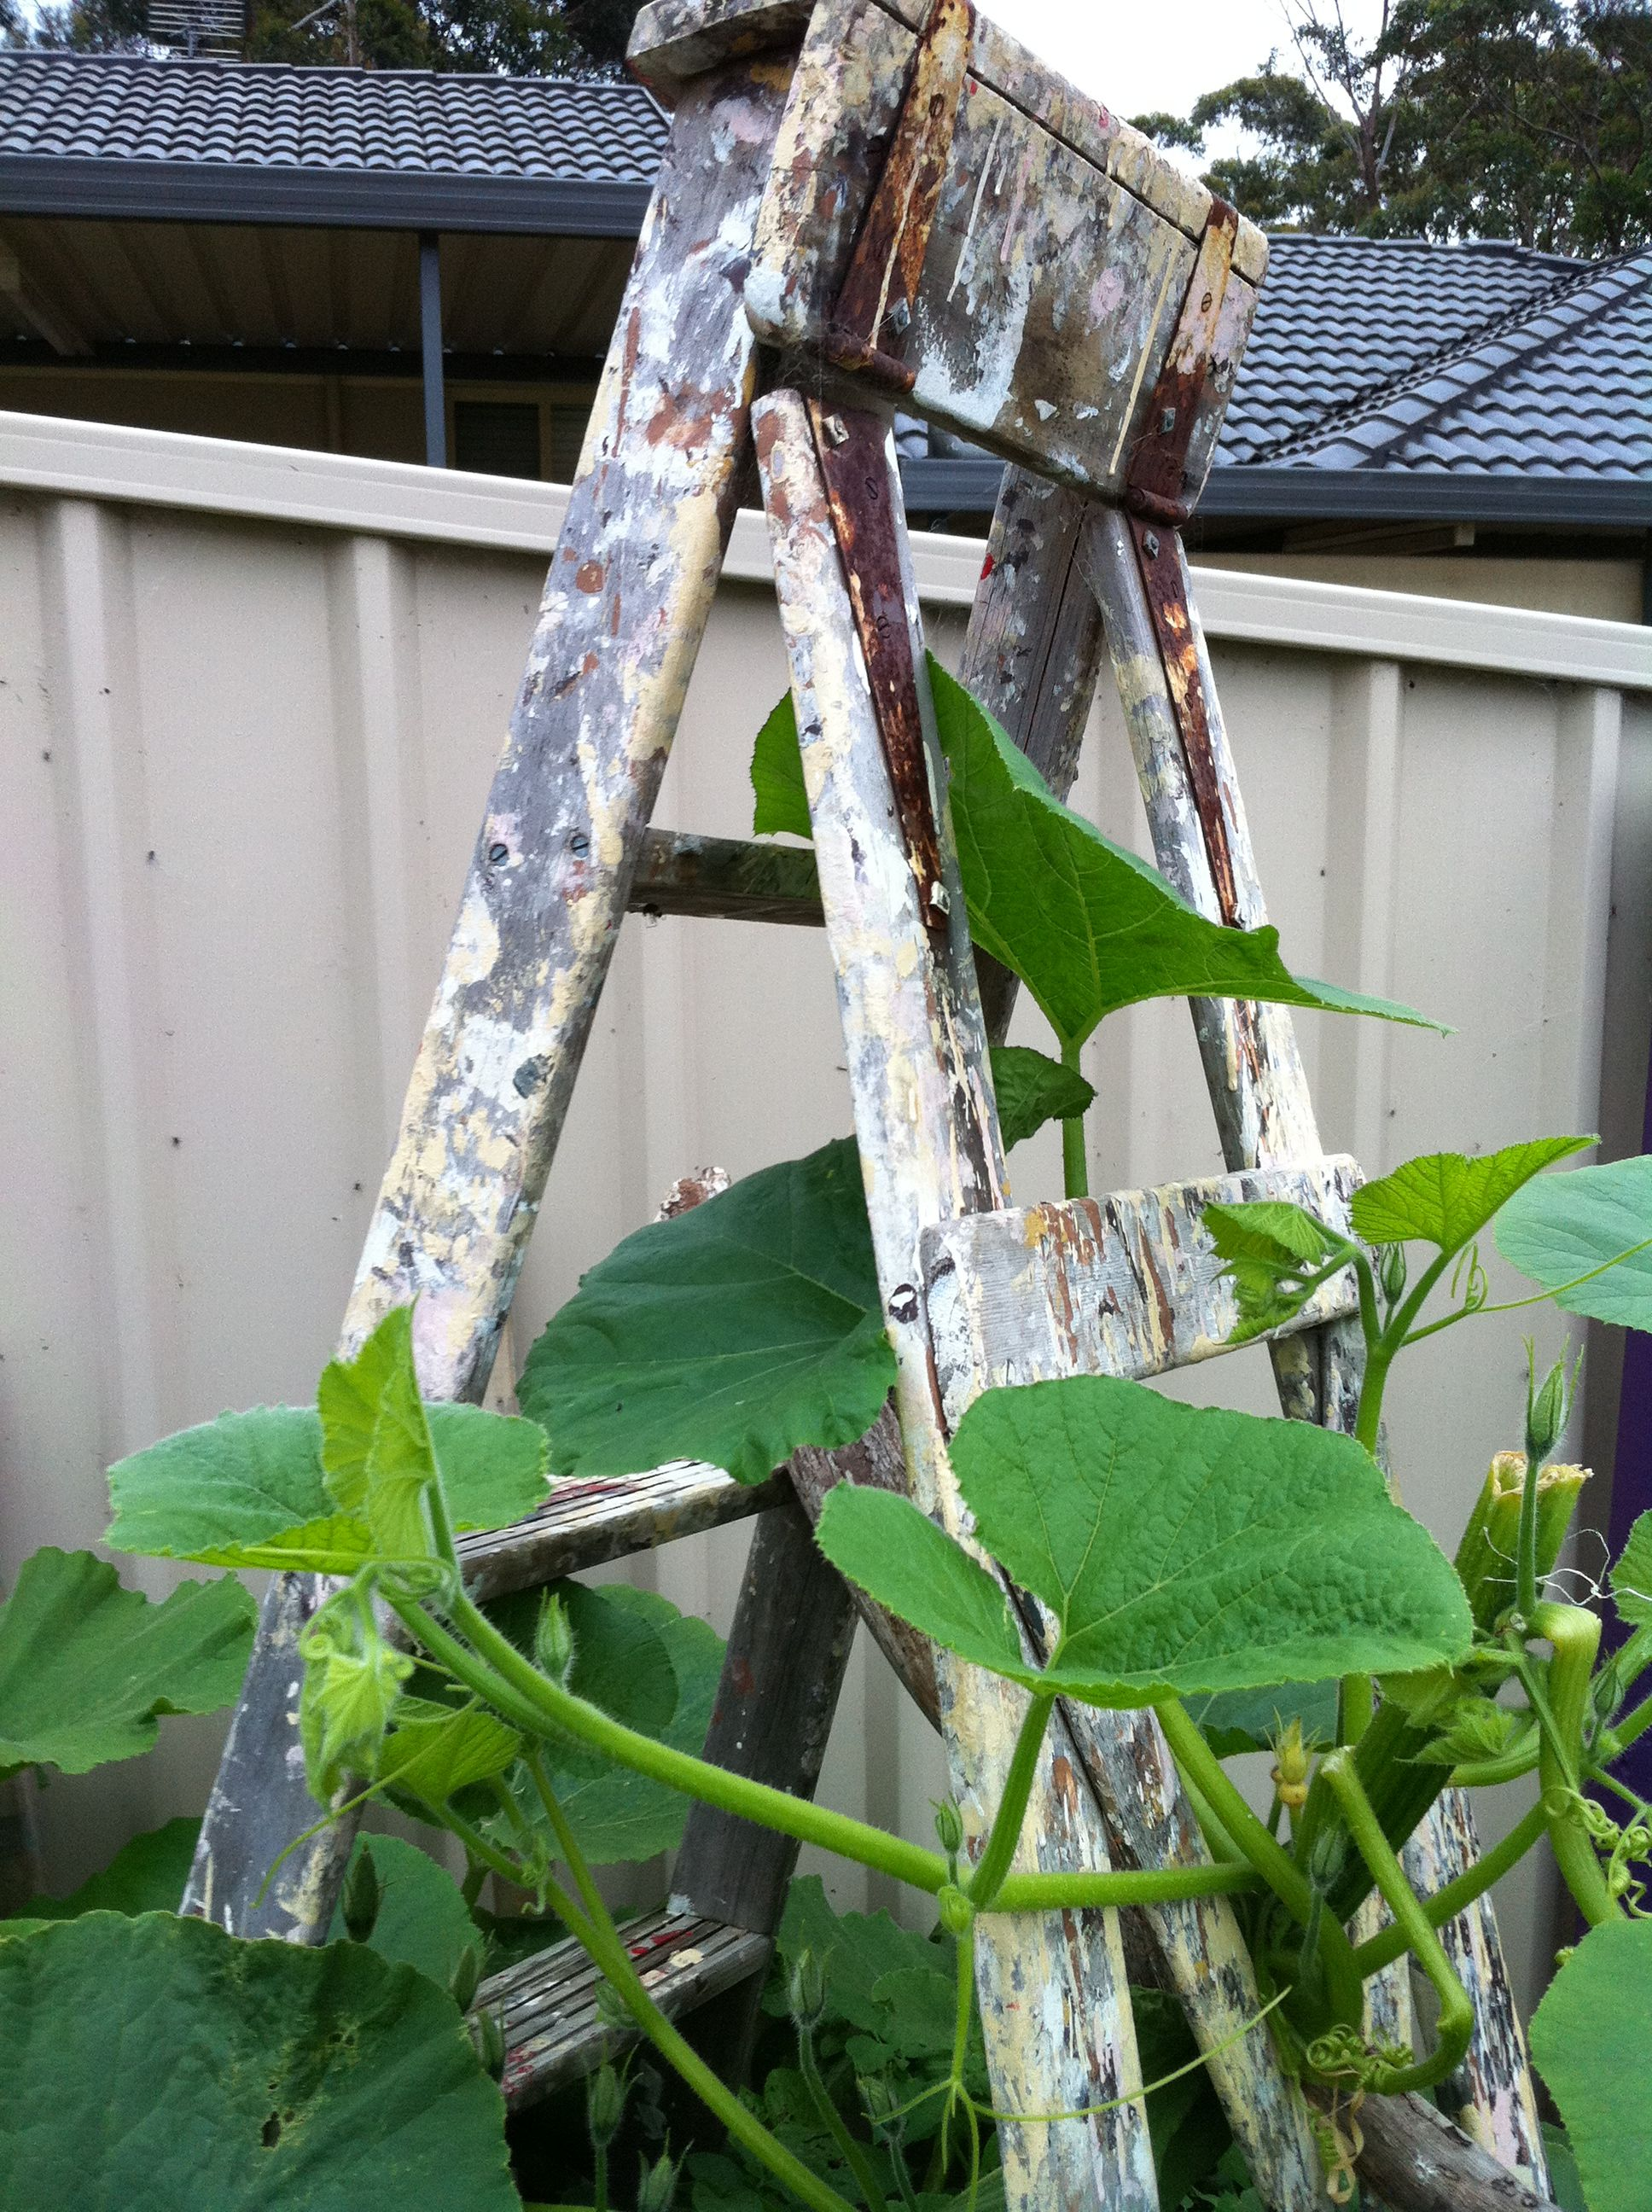 Ladders in the garden.